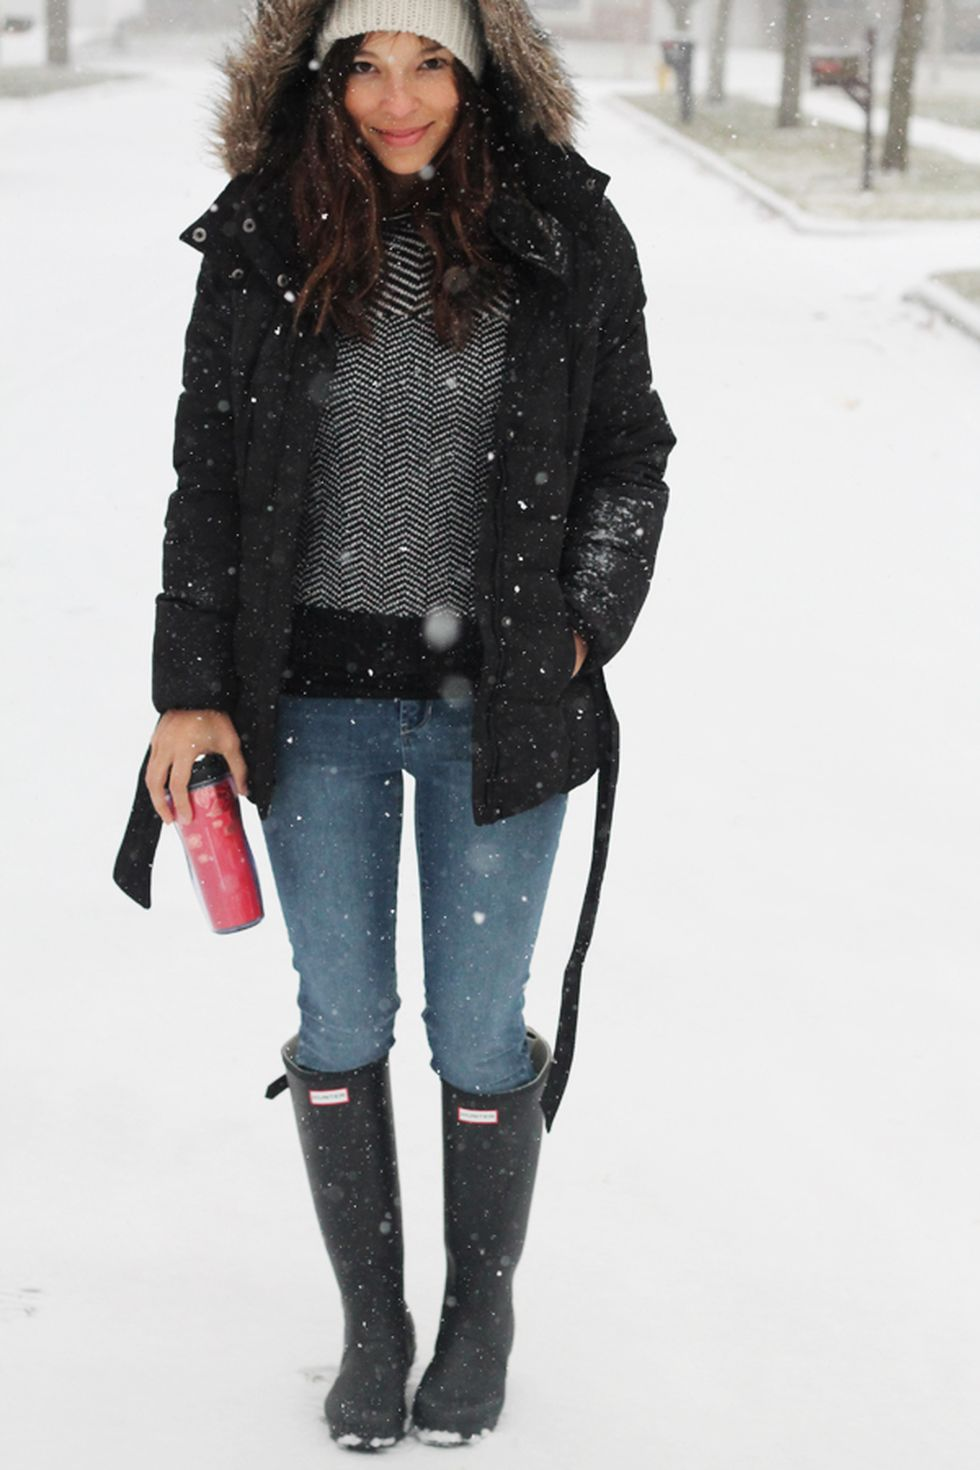 Fashionable women snow outfits for this winter 35 ...